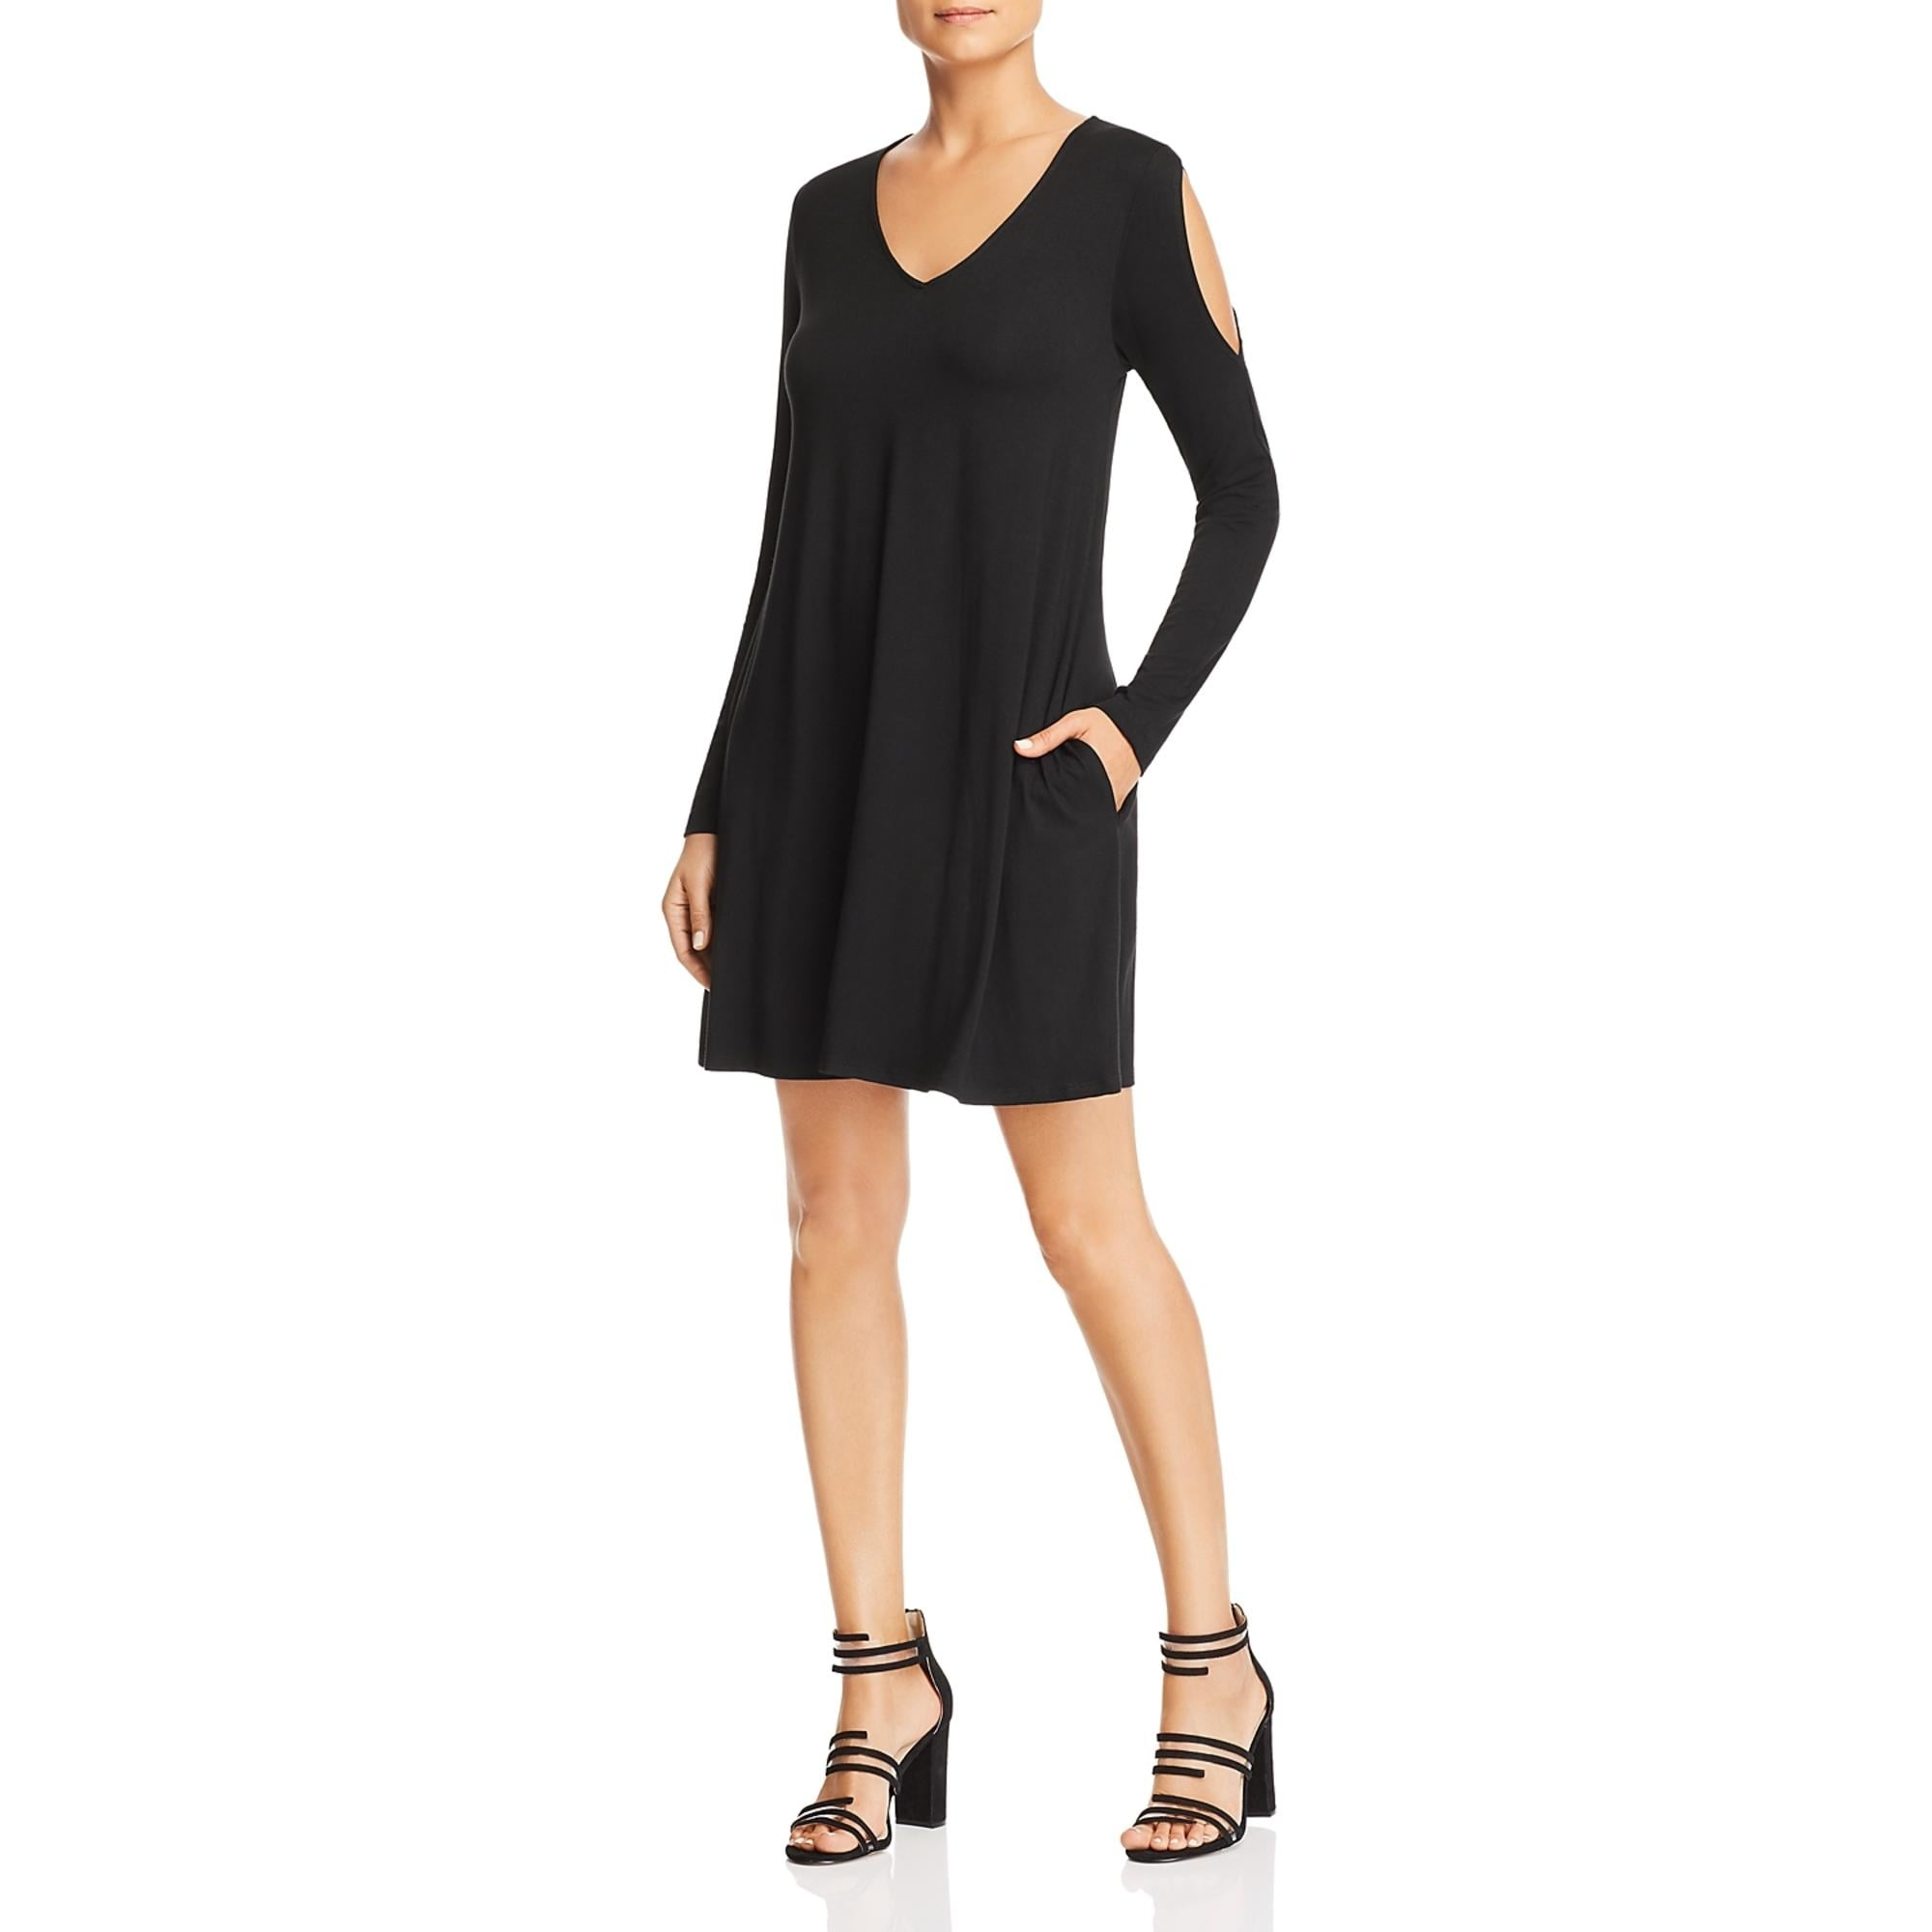 Robert Michaels Womens Cold Shoulder Printed Daytime Casual Dress BHFO 8816